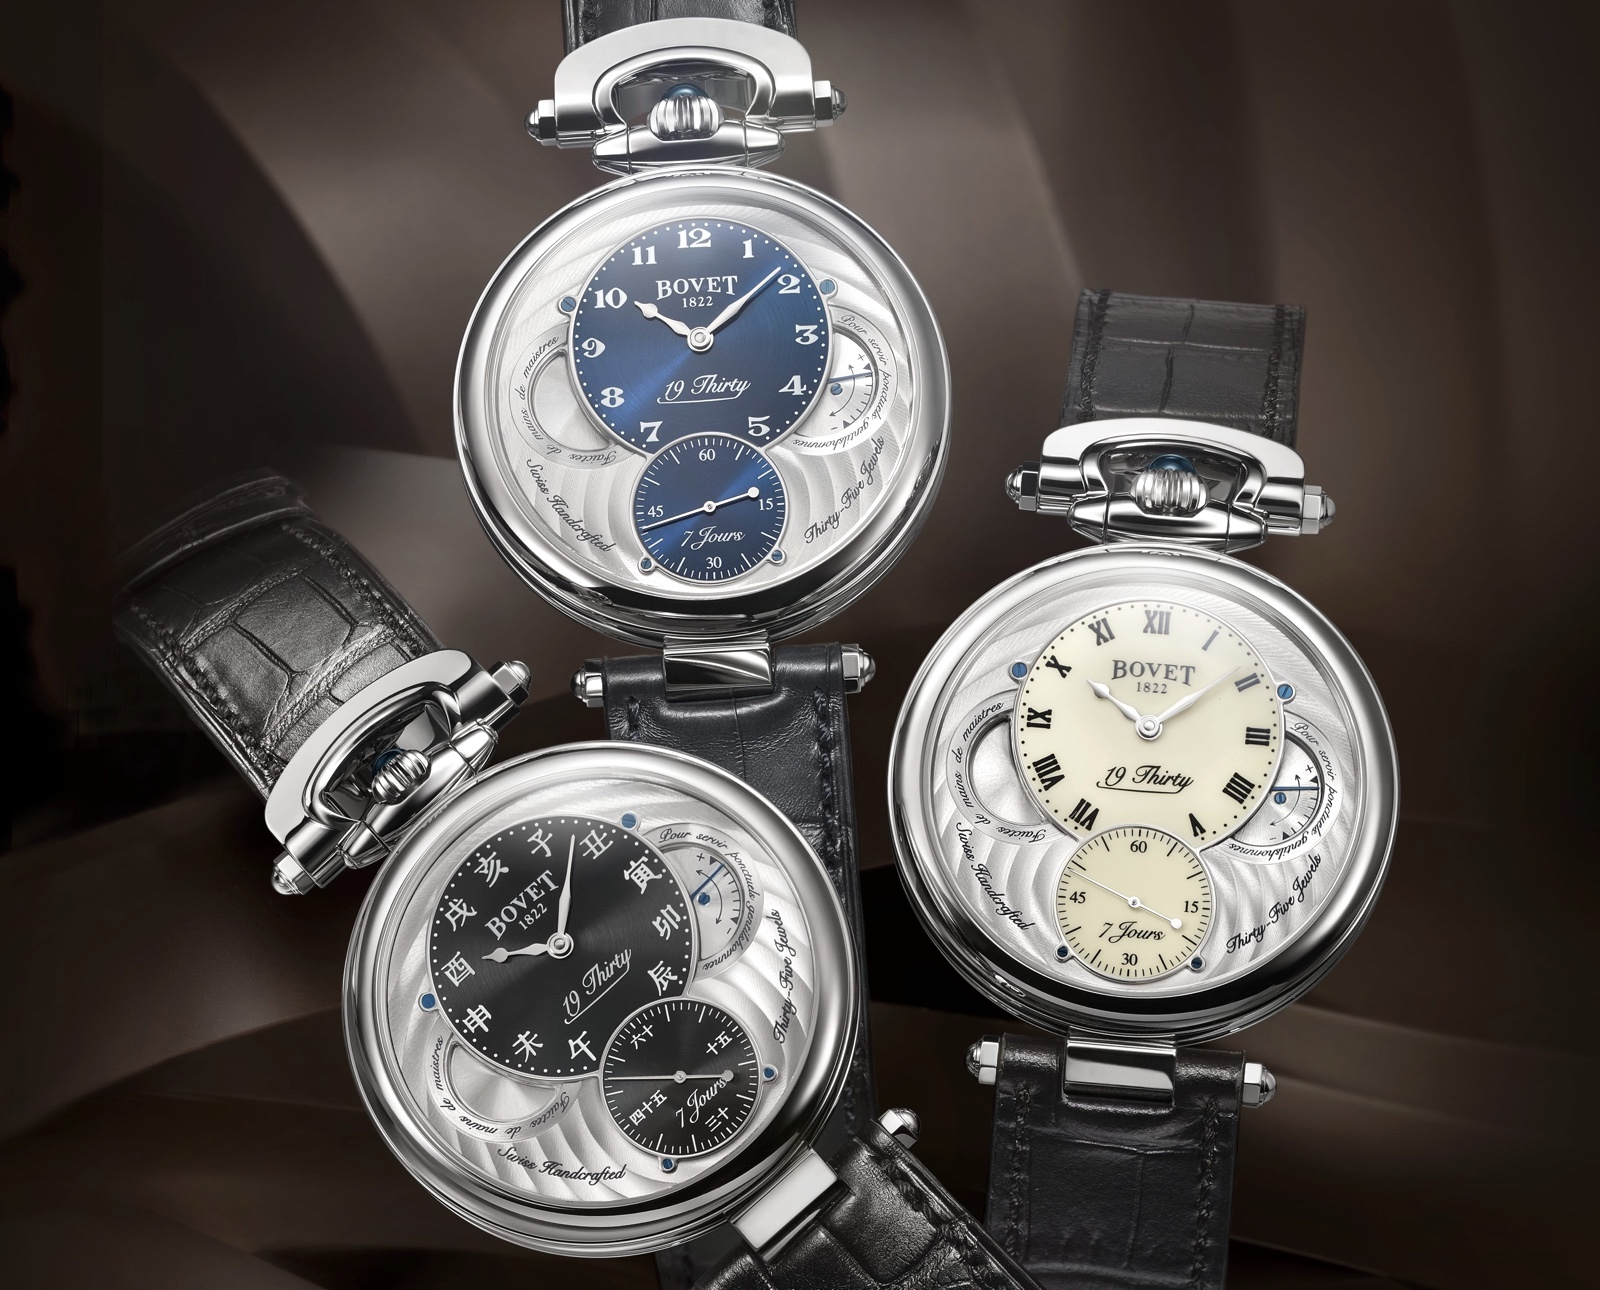 Bovet 19Thirty Fleurier Steel Models